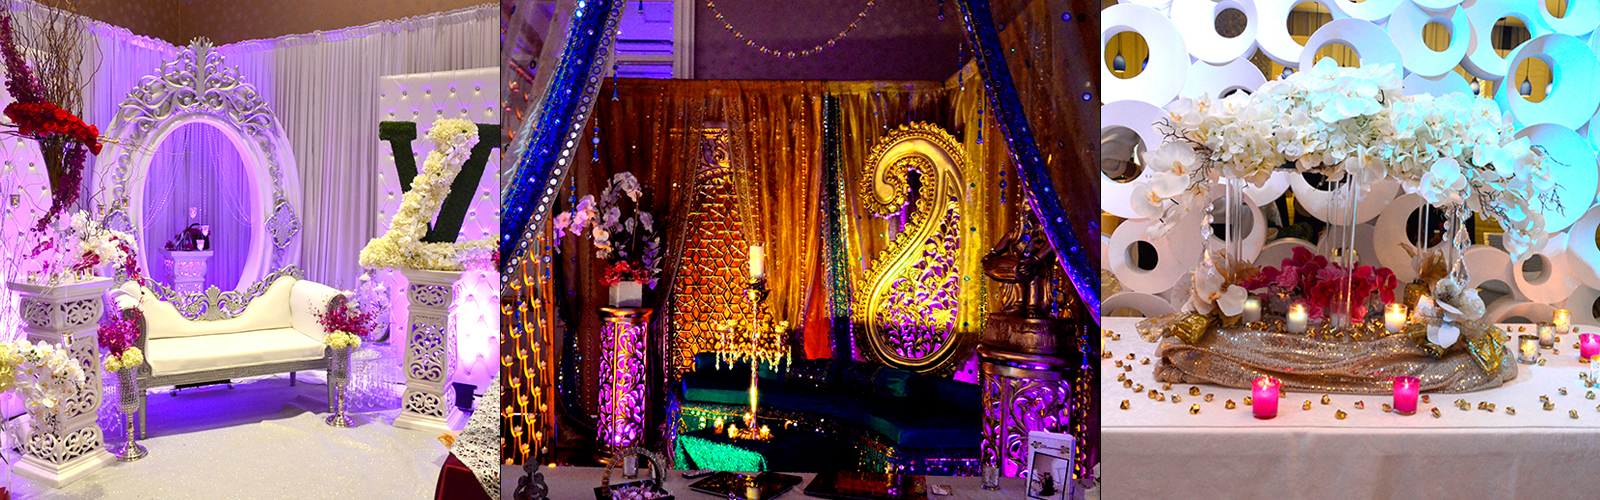 Contemporary dcor ideas for a low budget indian wedding glamorous contemporary dcor ideas junglespirit Images